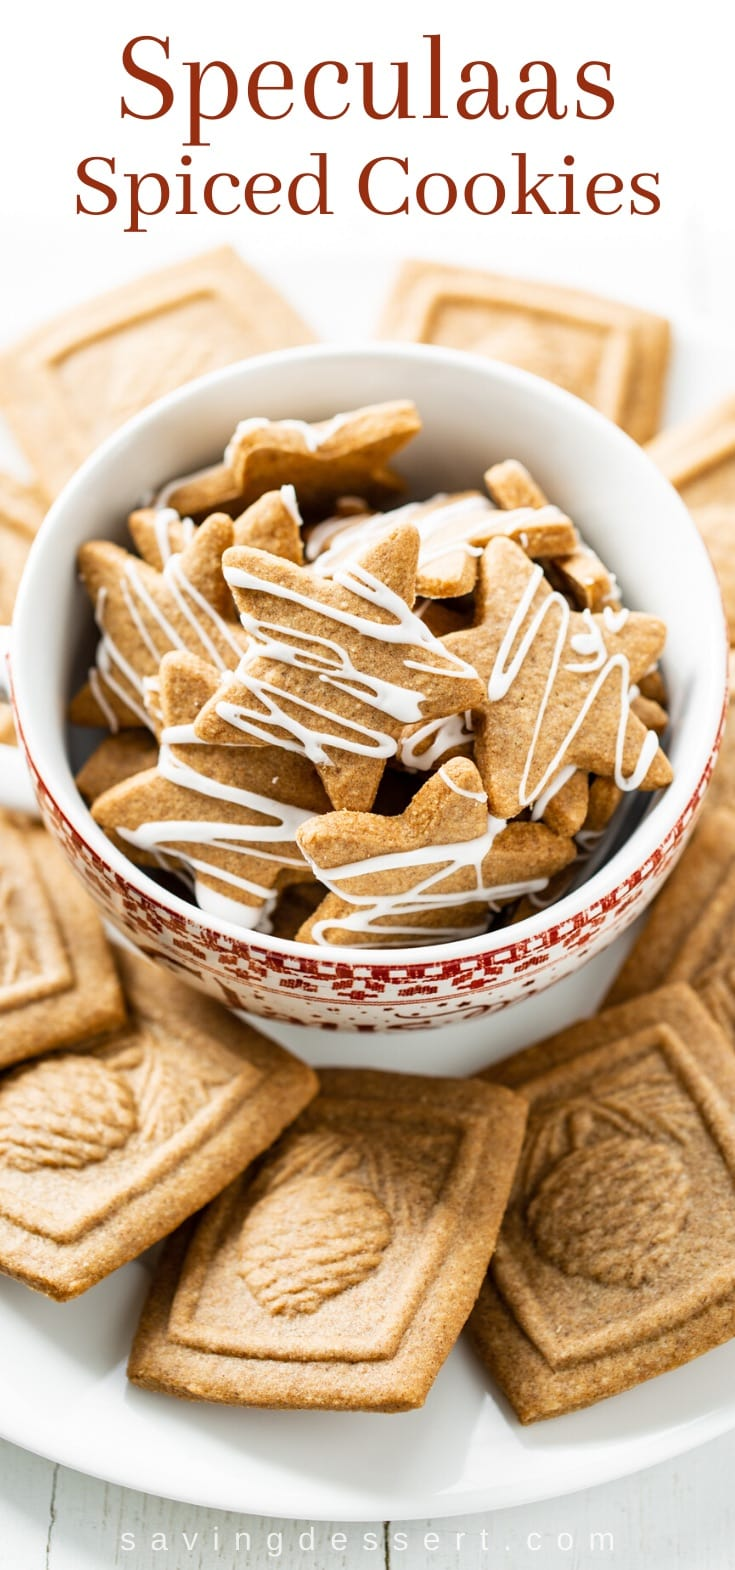 Speculaas Spiced Cookies